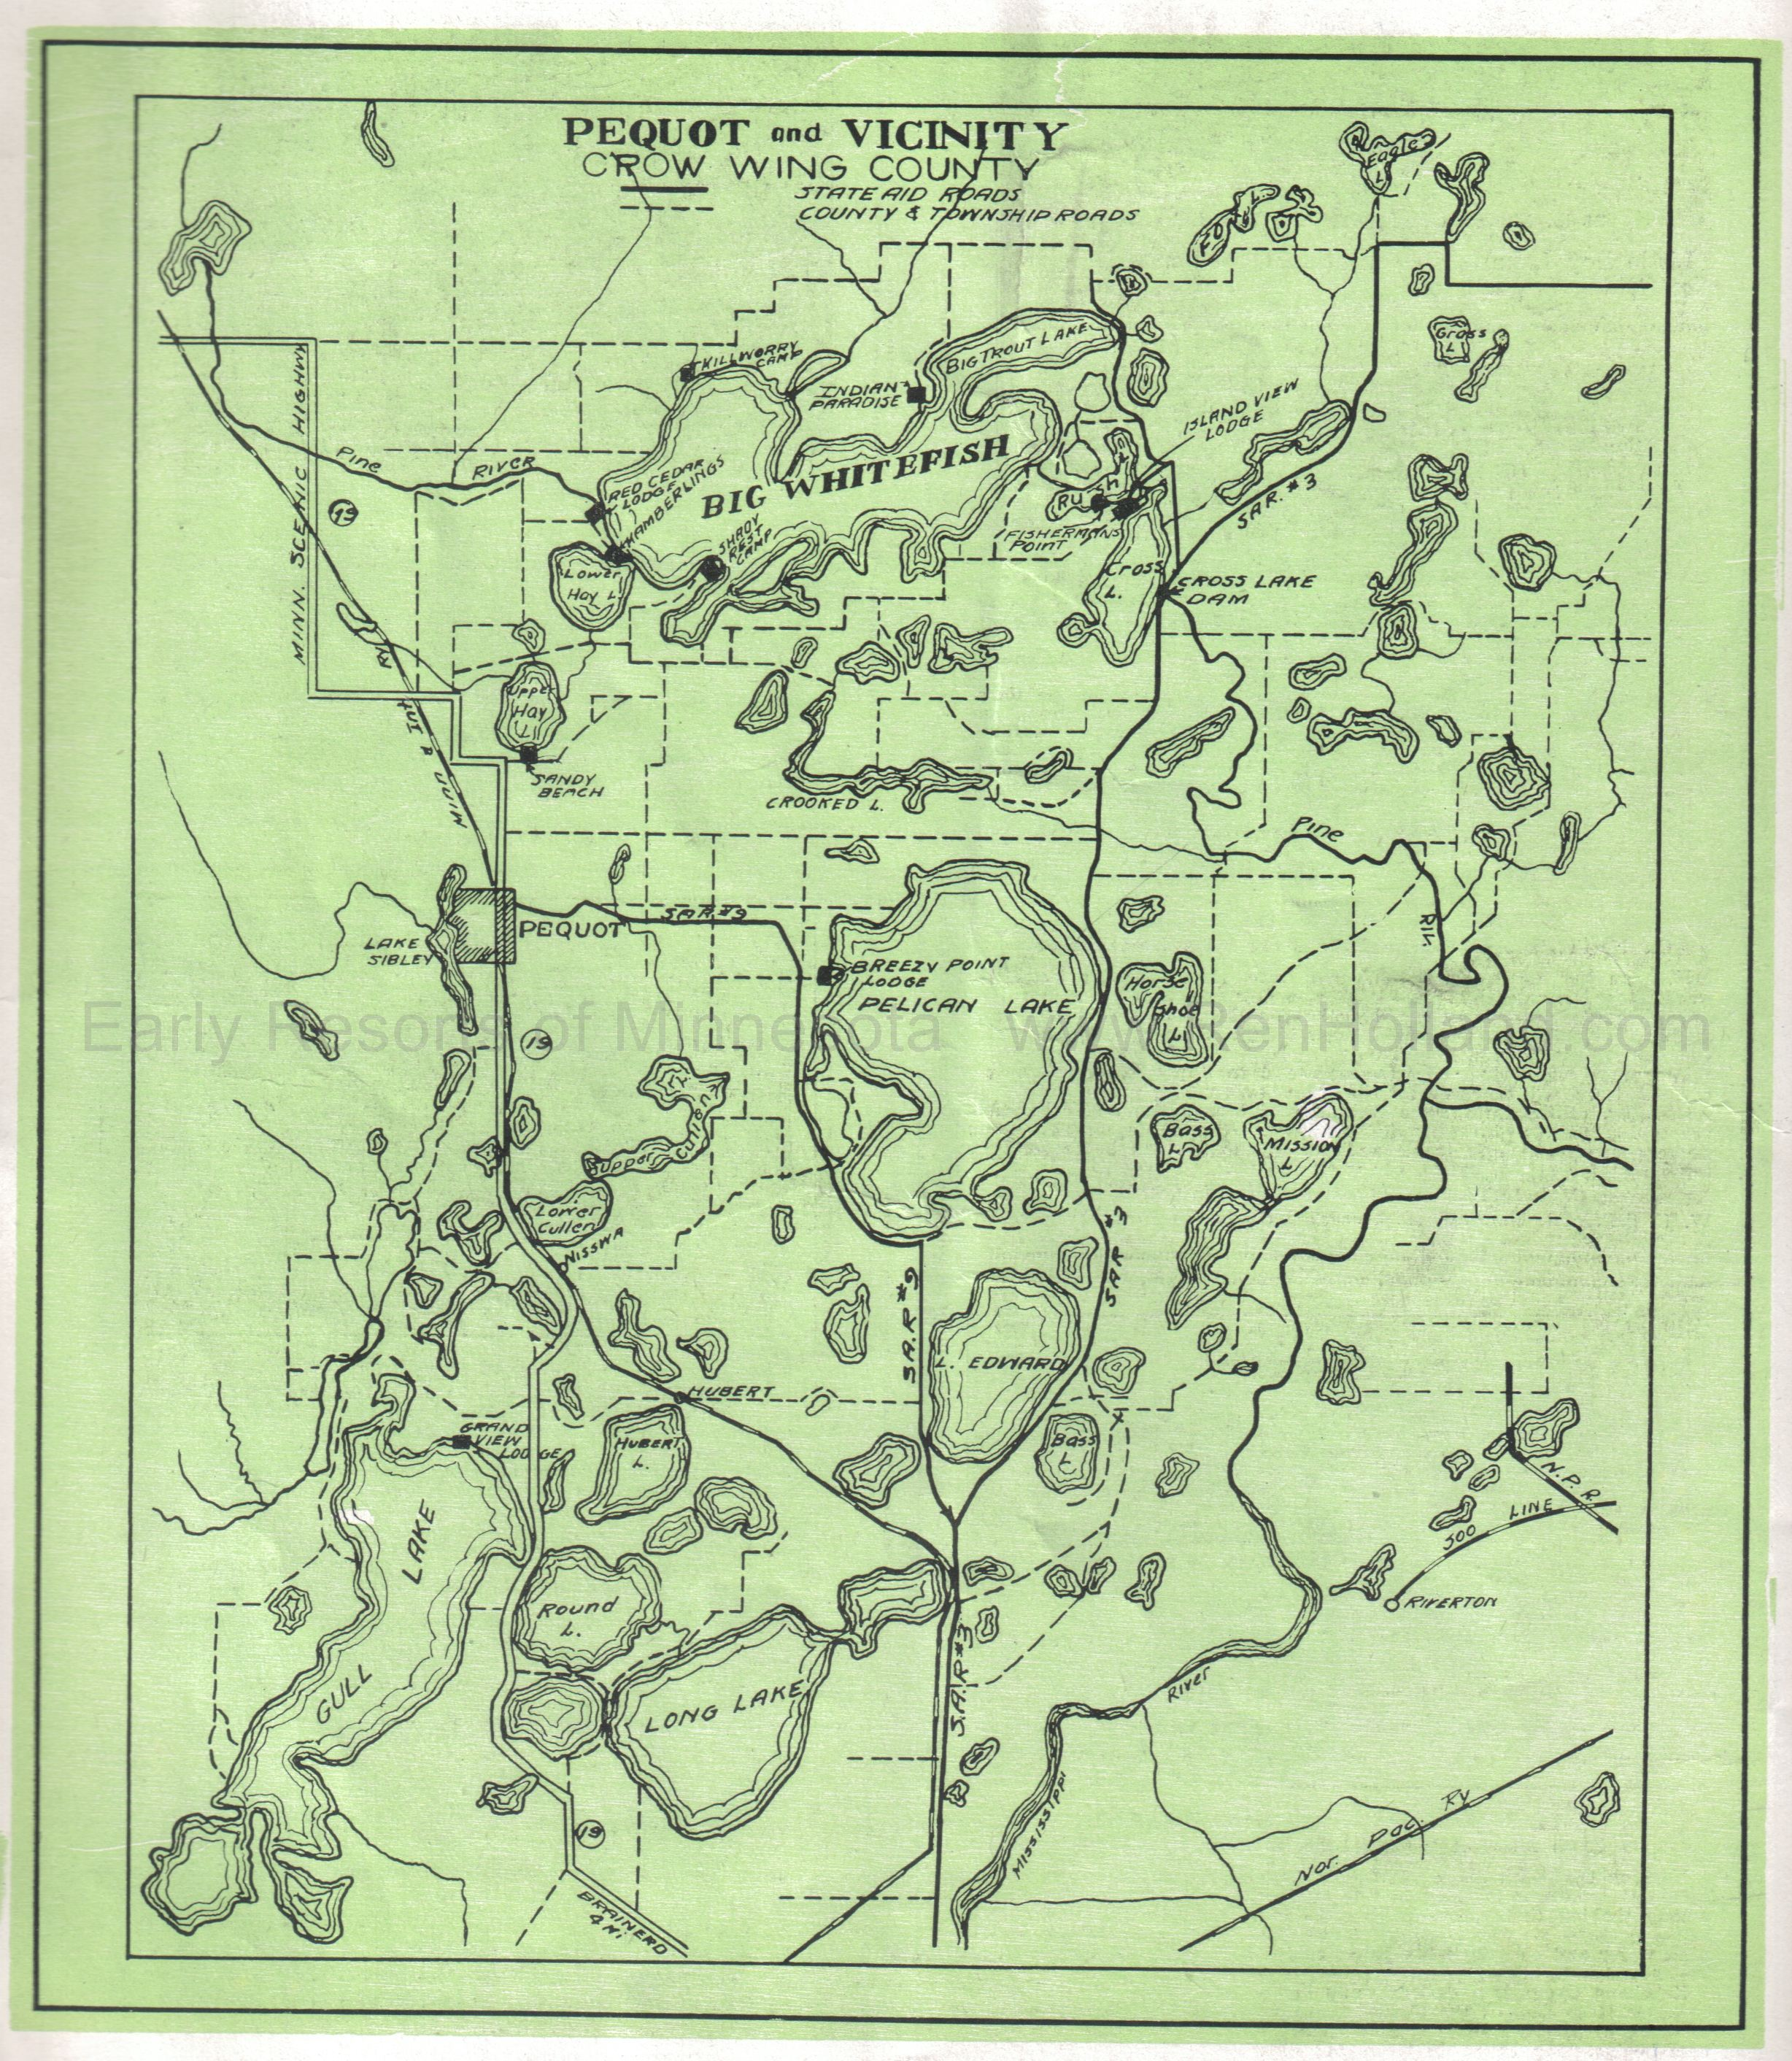 EARLY RESORTS OF MINNESOTA Maps  Ren Hollands Website